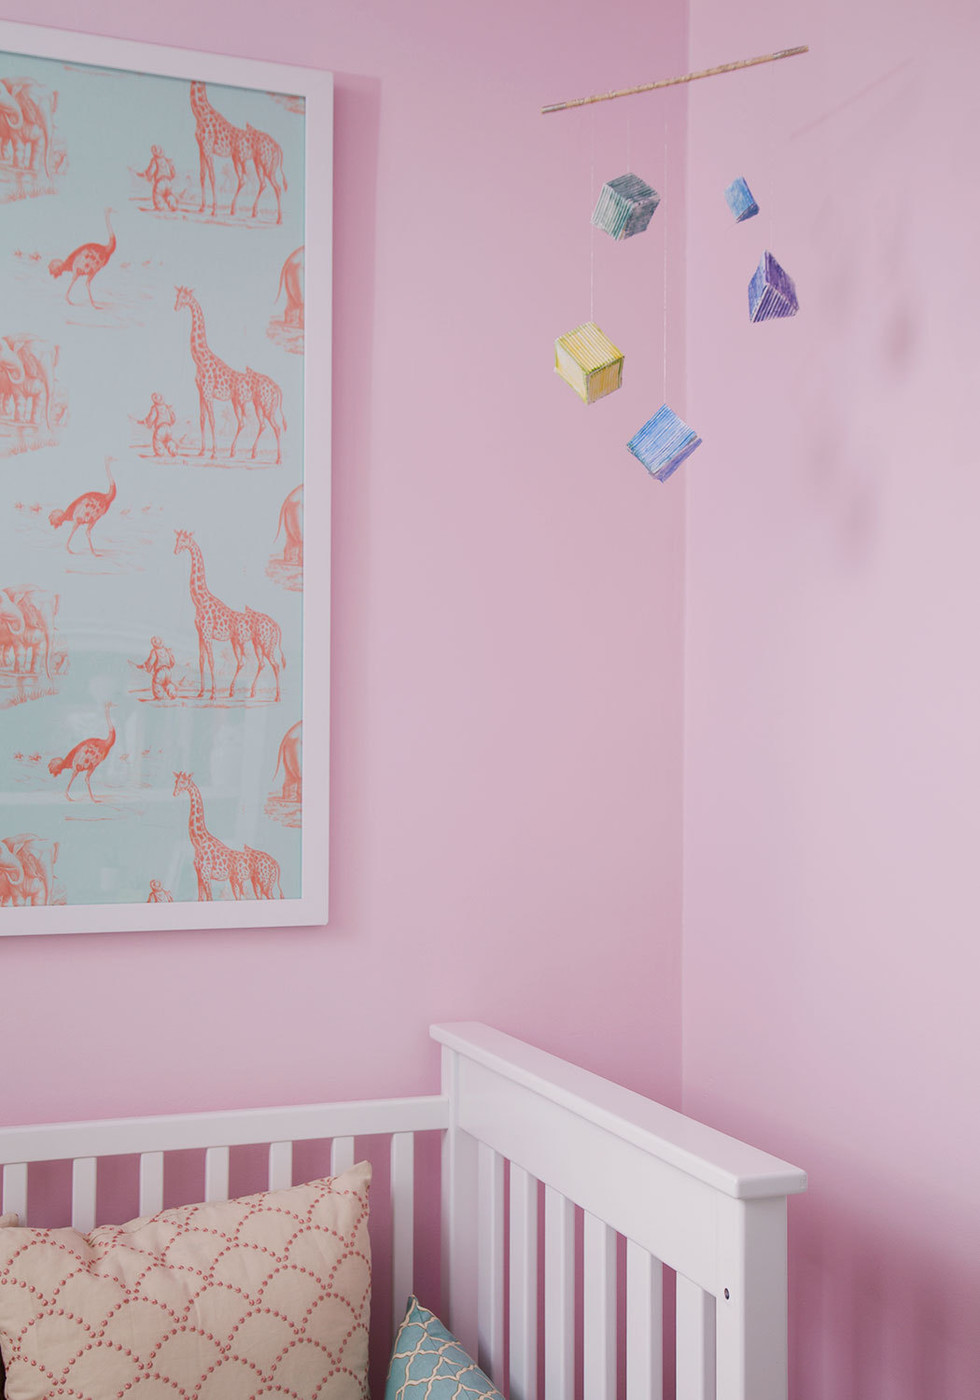 Framed wallpaper in a pink nursery